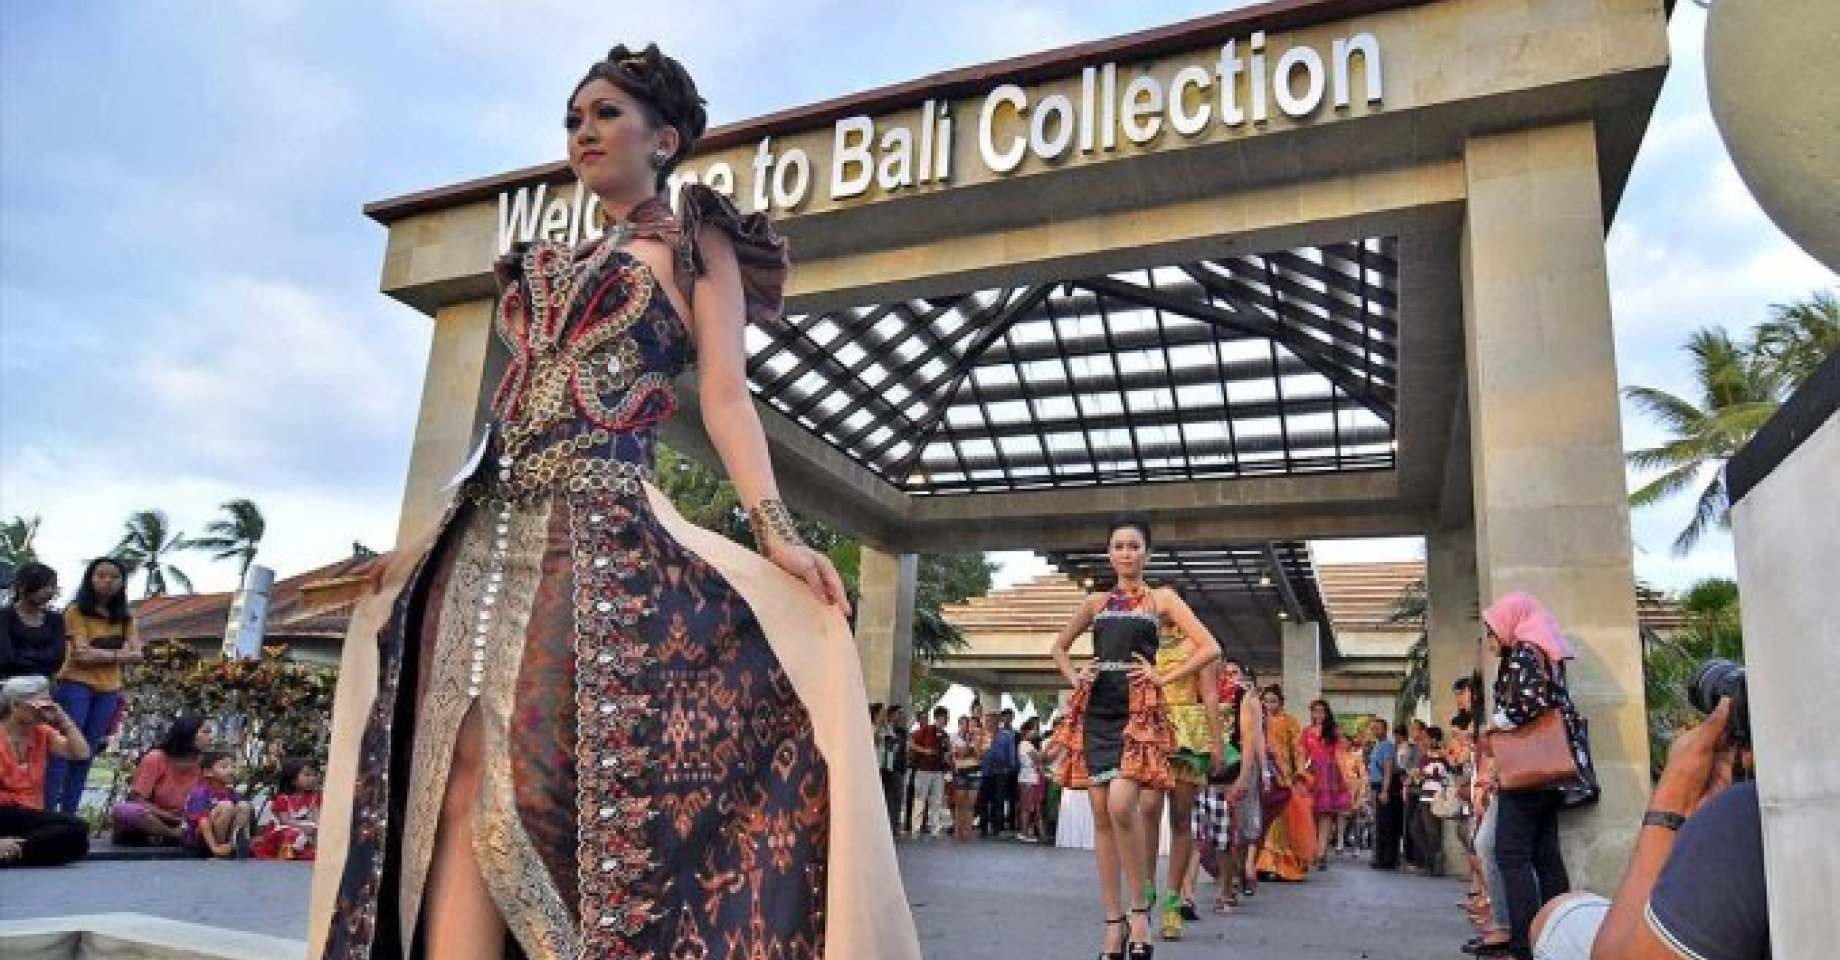 Welcome to Bali Collection